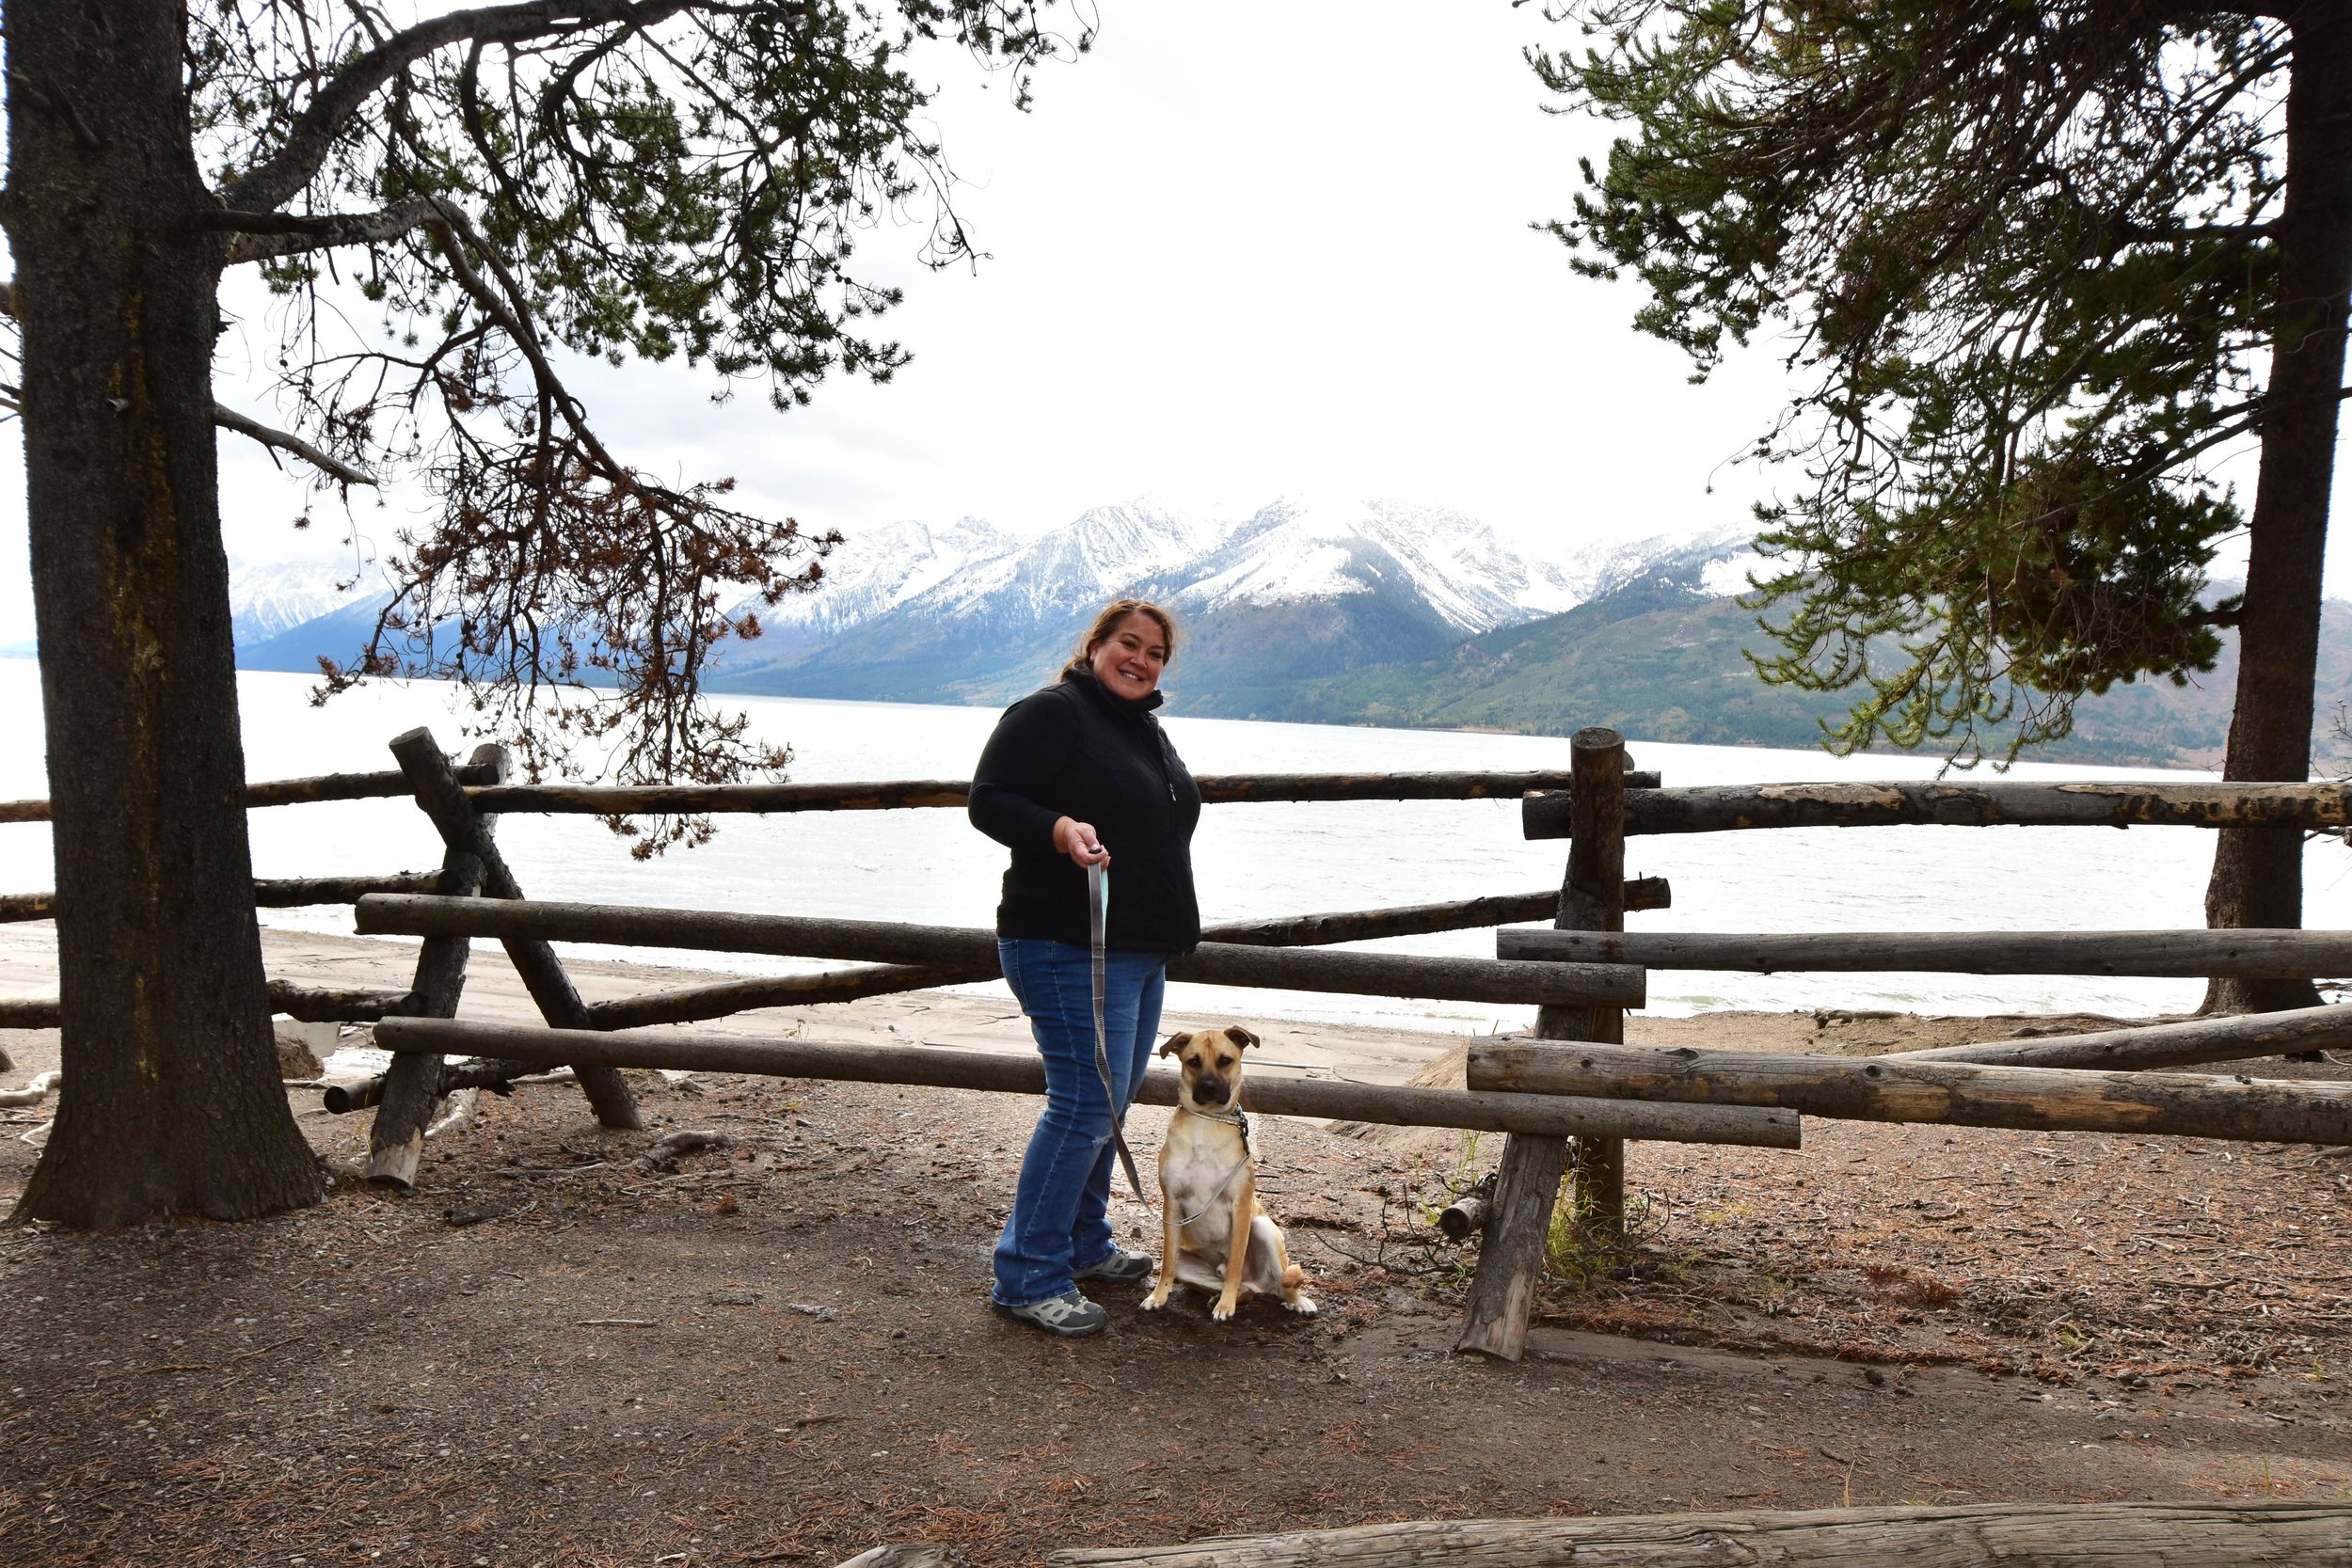 Me and Chance at Grand Tetons National Park in Wyoming